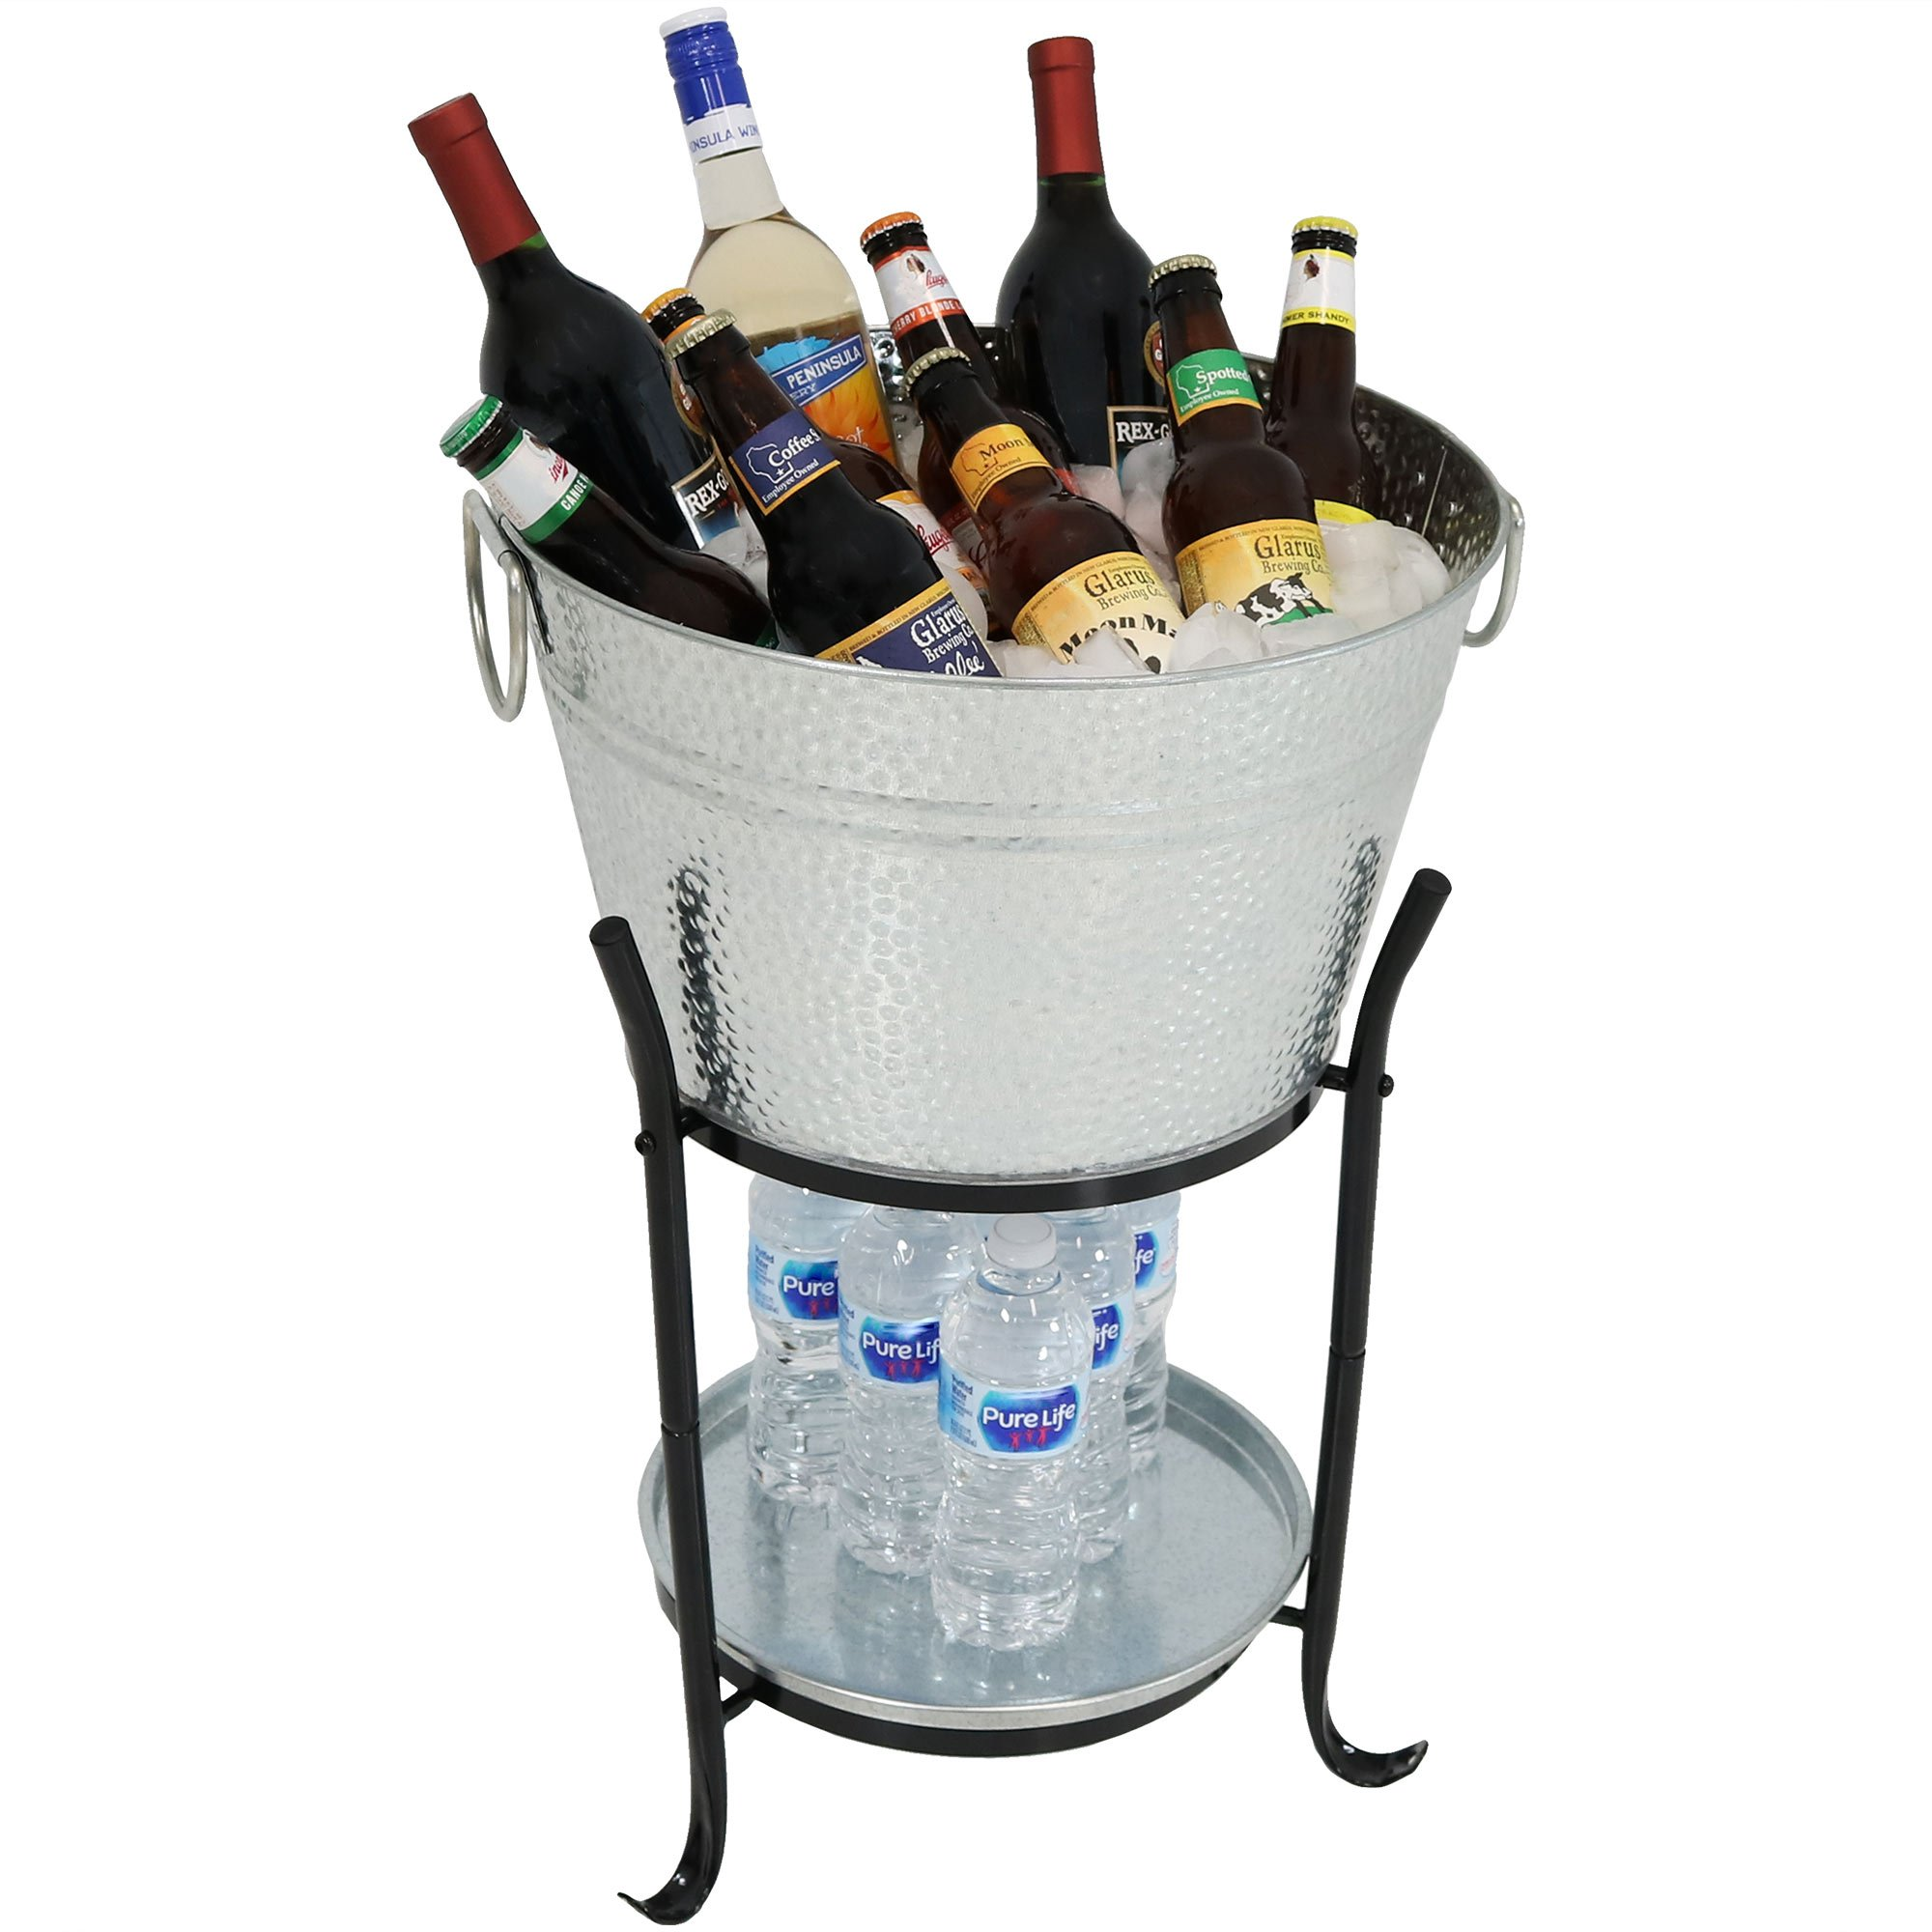 Sunnydaze Ice Bucket Drink Cooler with Stand and Tray, Pebbled Galvanized Steel, Holds Beer, Wine, Champagne and More